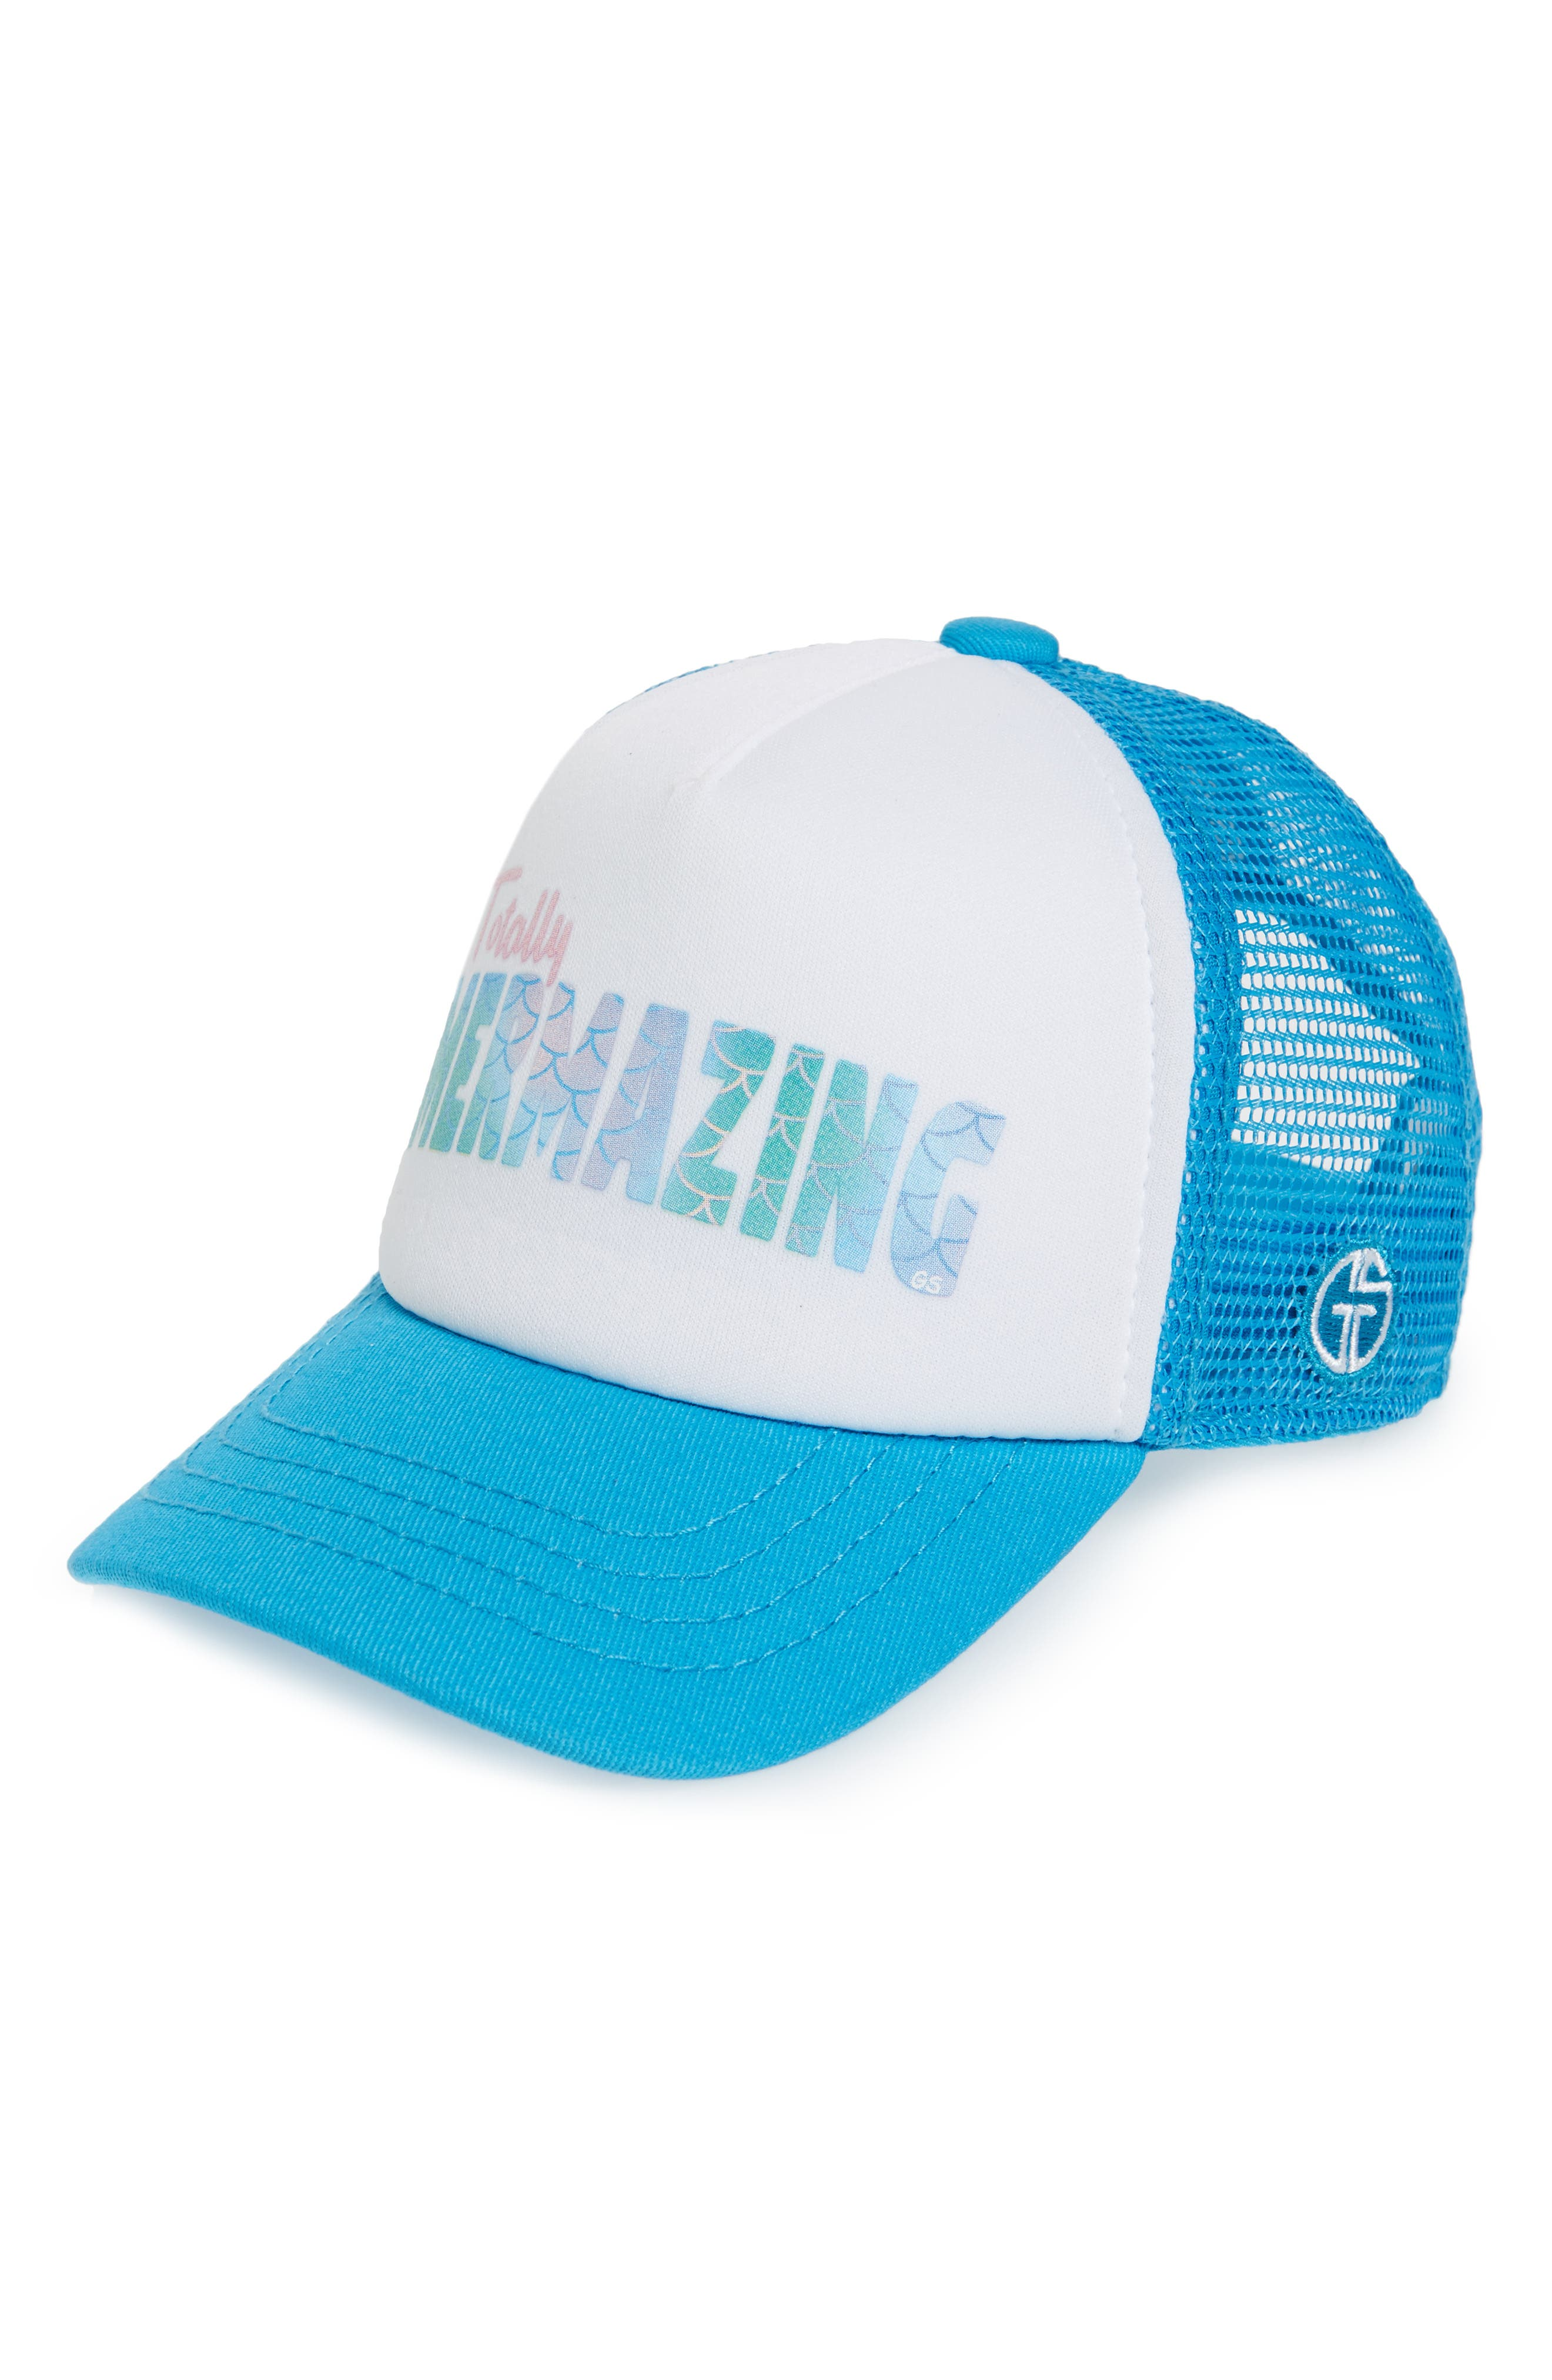 Grom Squad Totally Mermazing Trucker Hat (Girls)